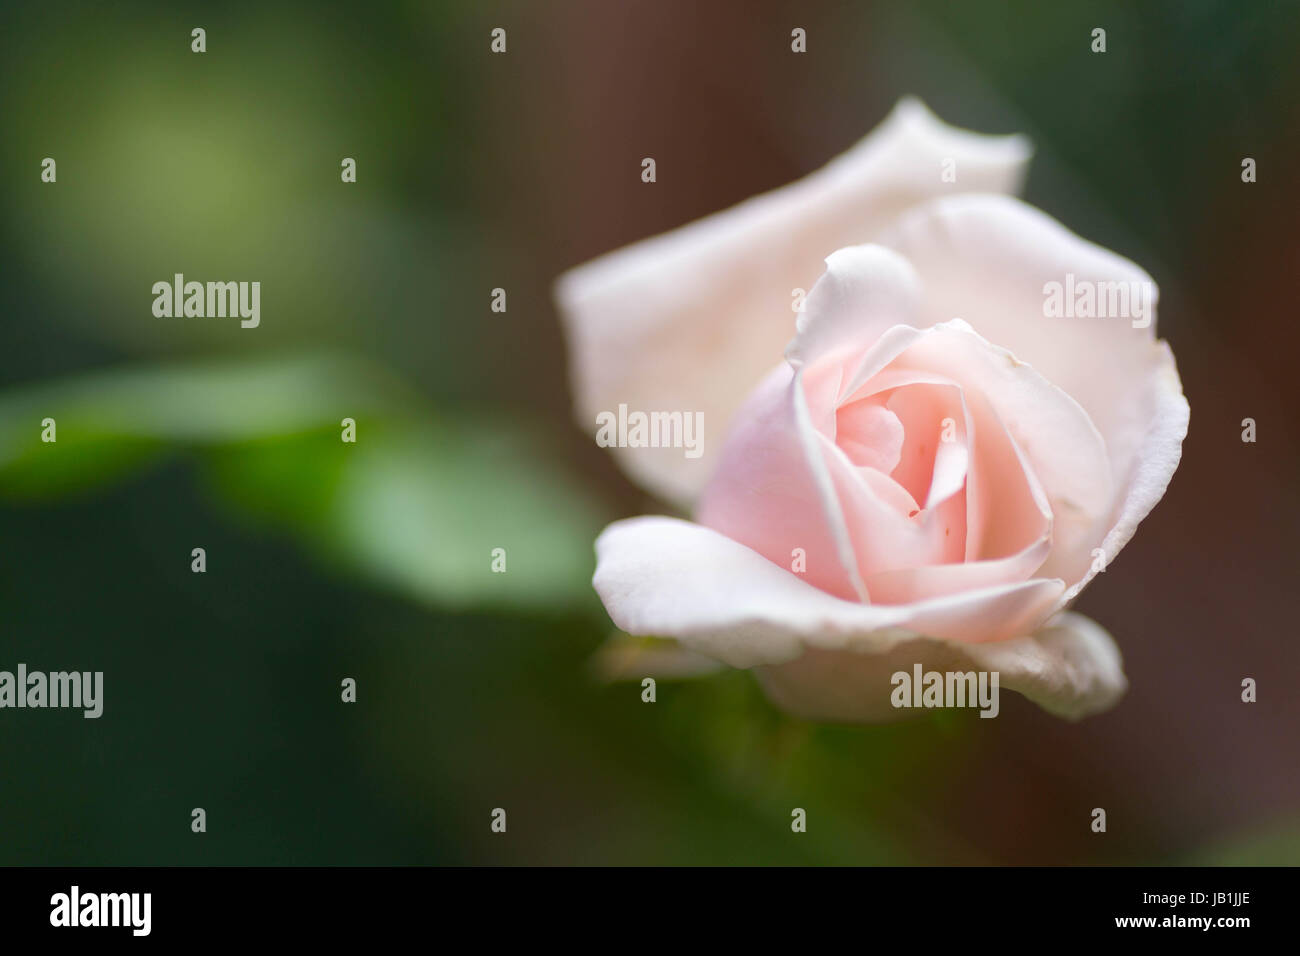 Garden flowers - Stock Image